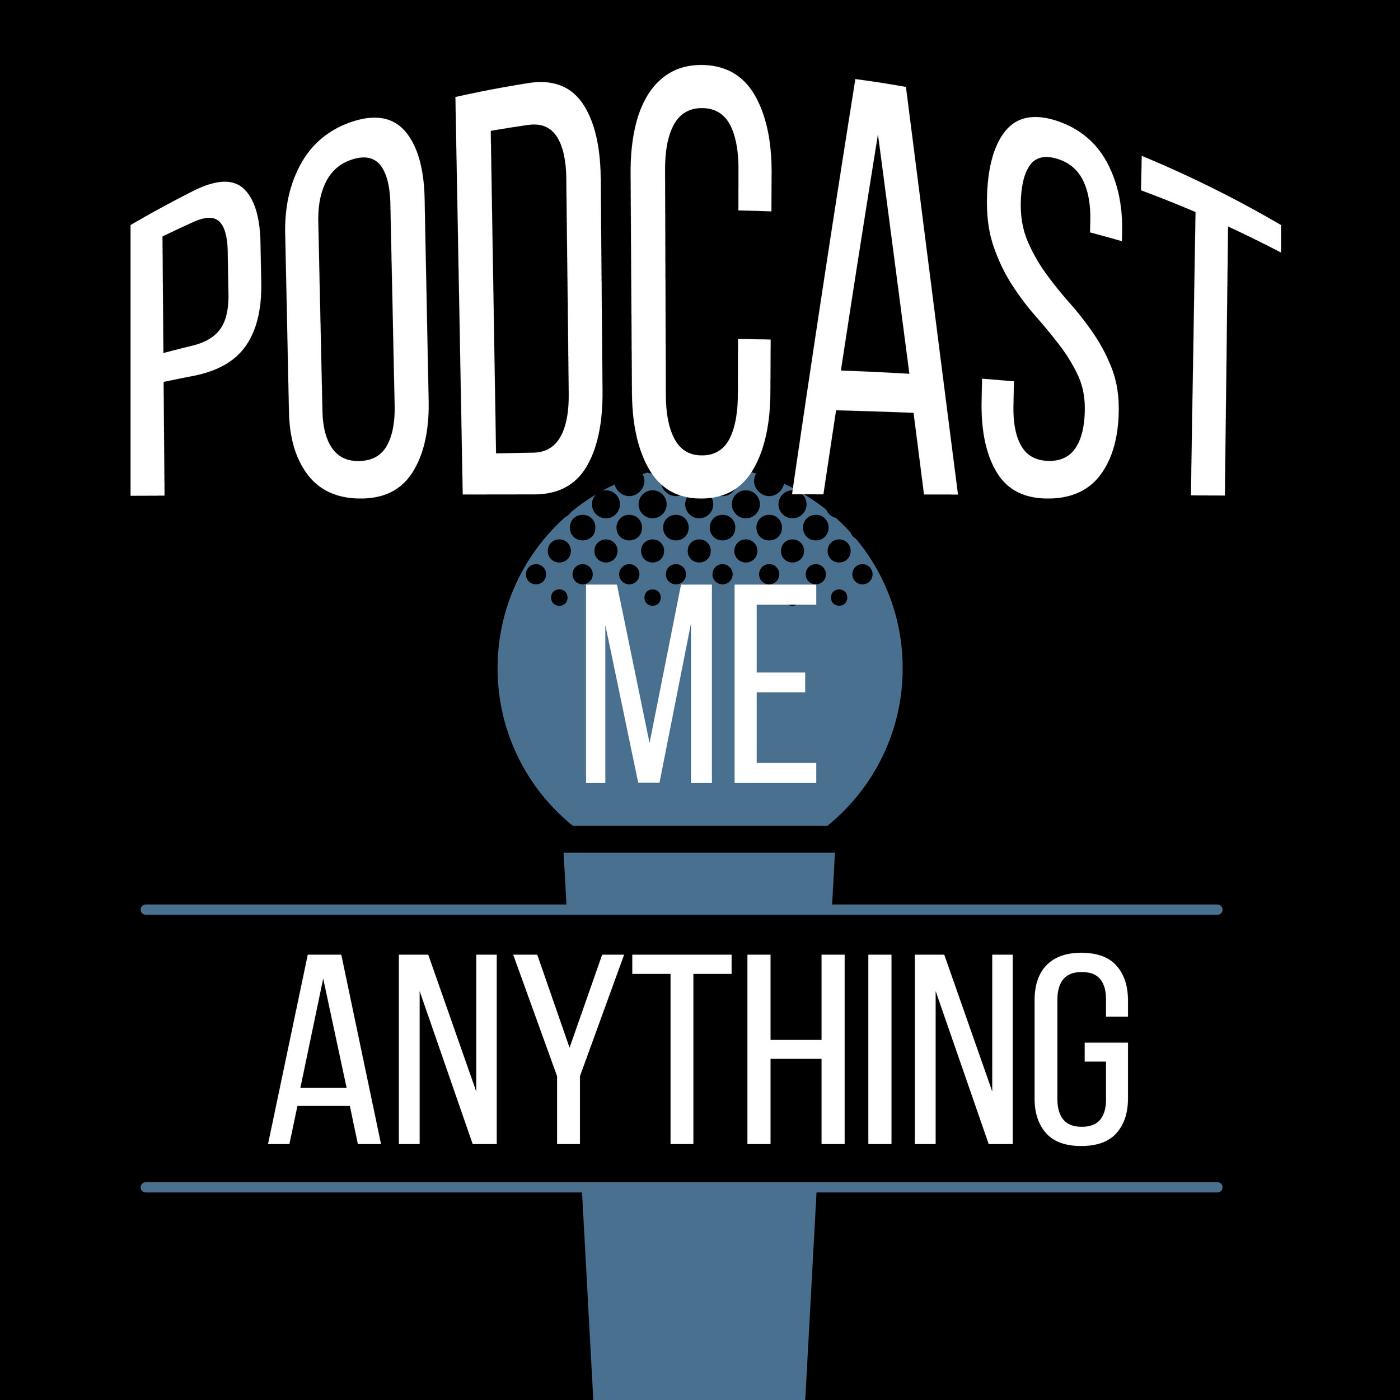 Podcast Me Anything Album Art